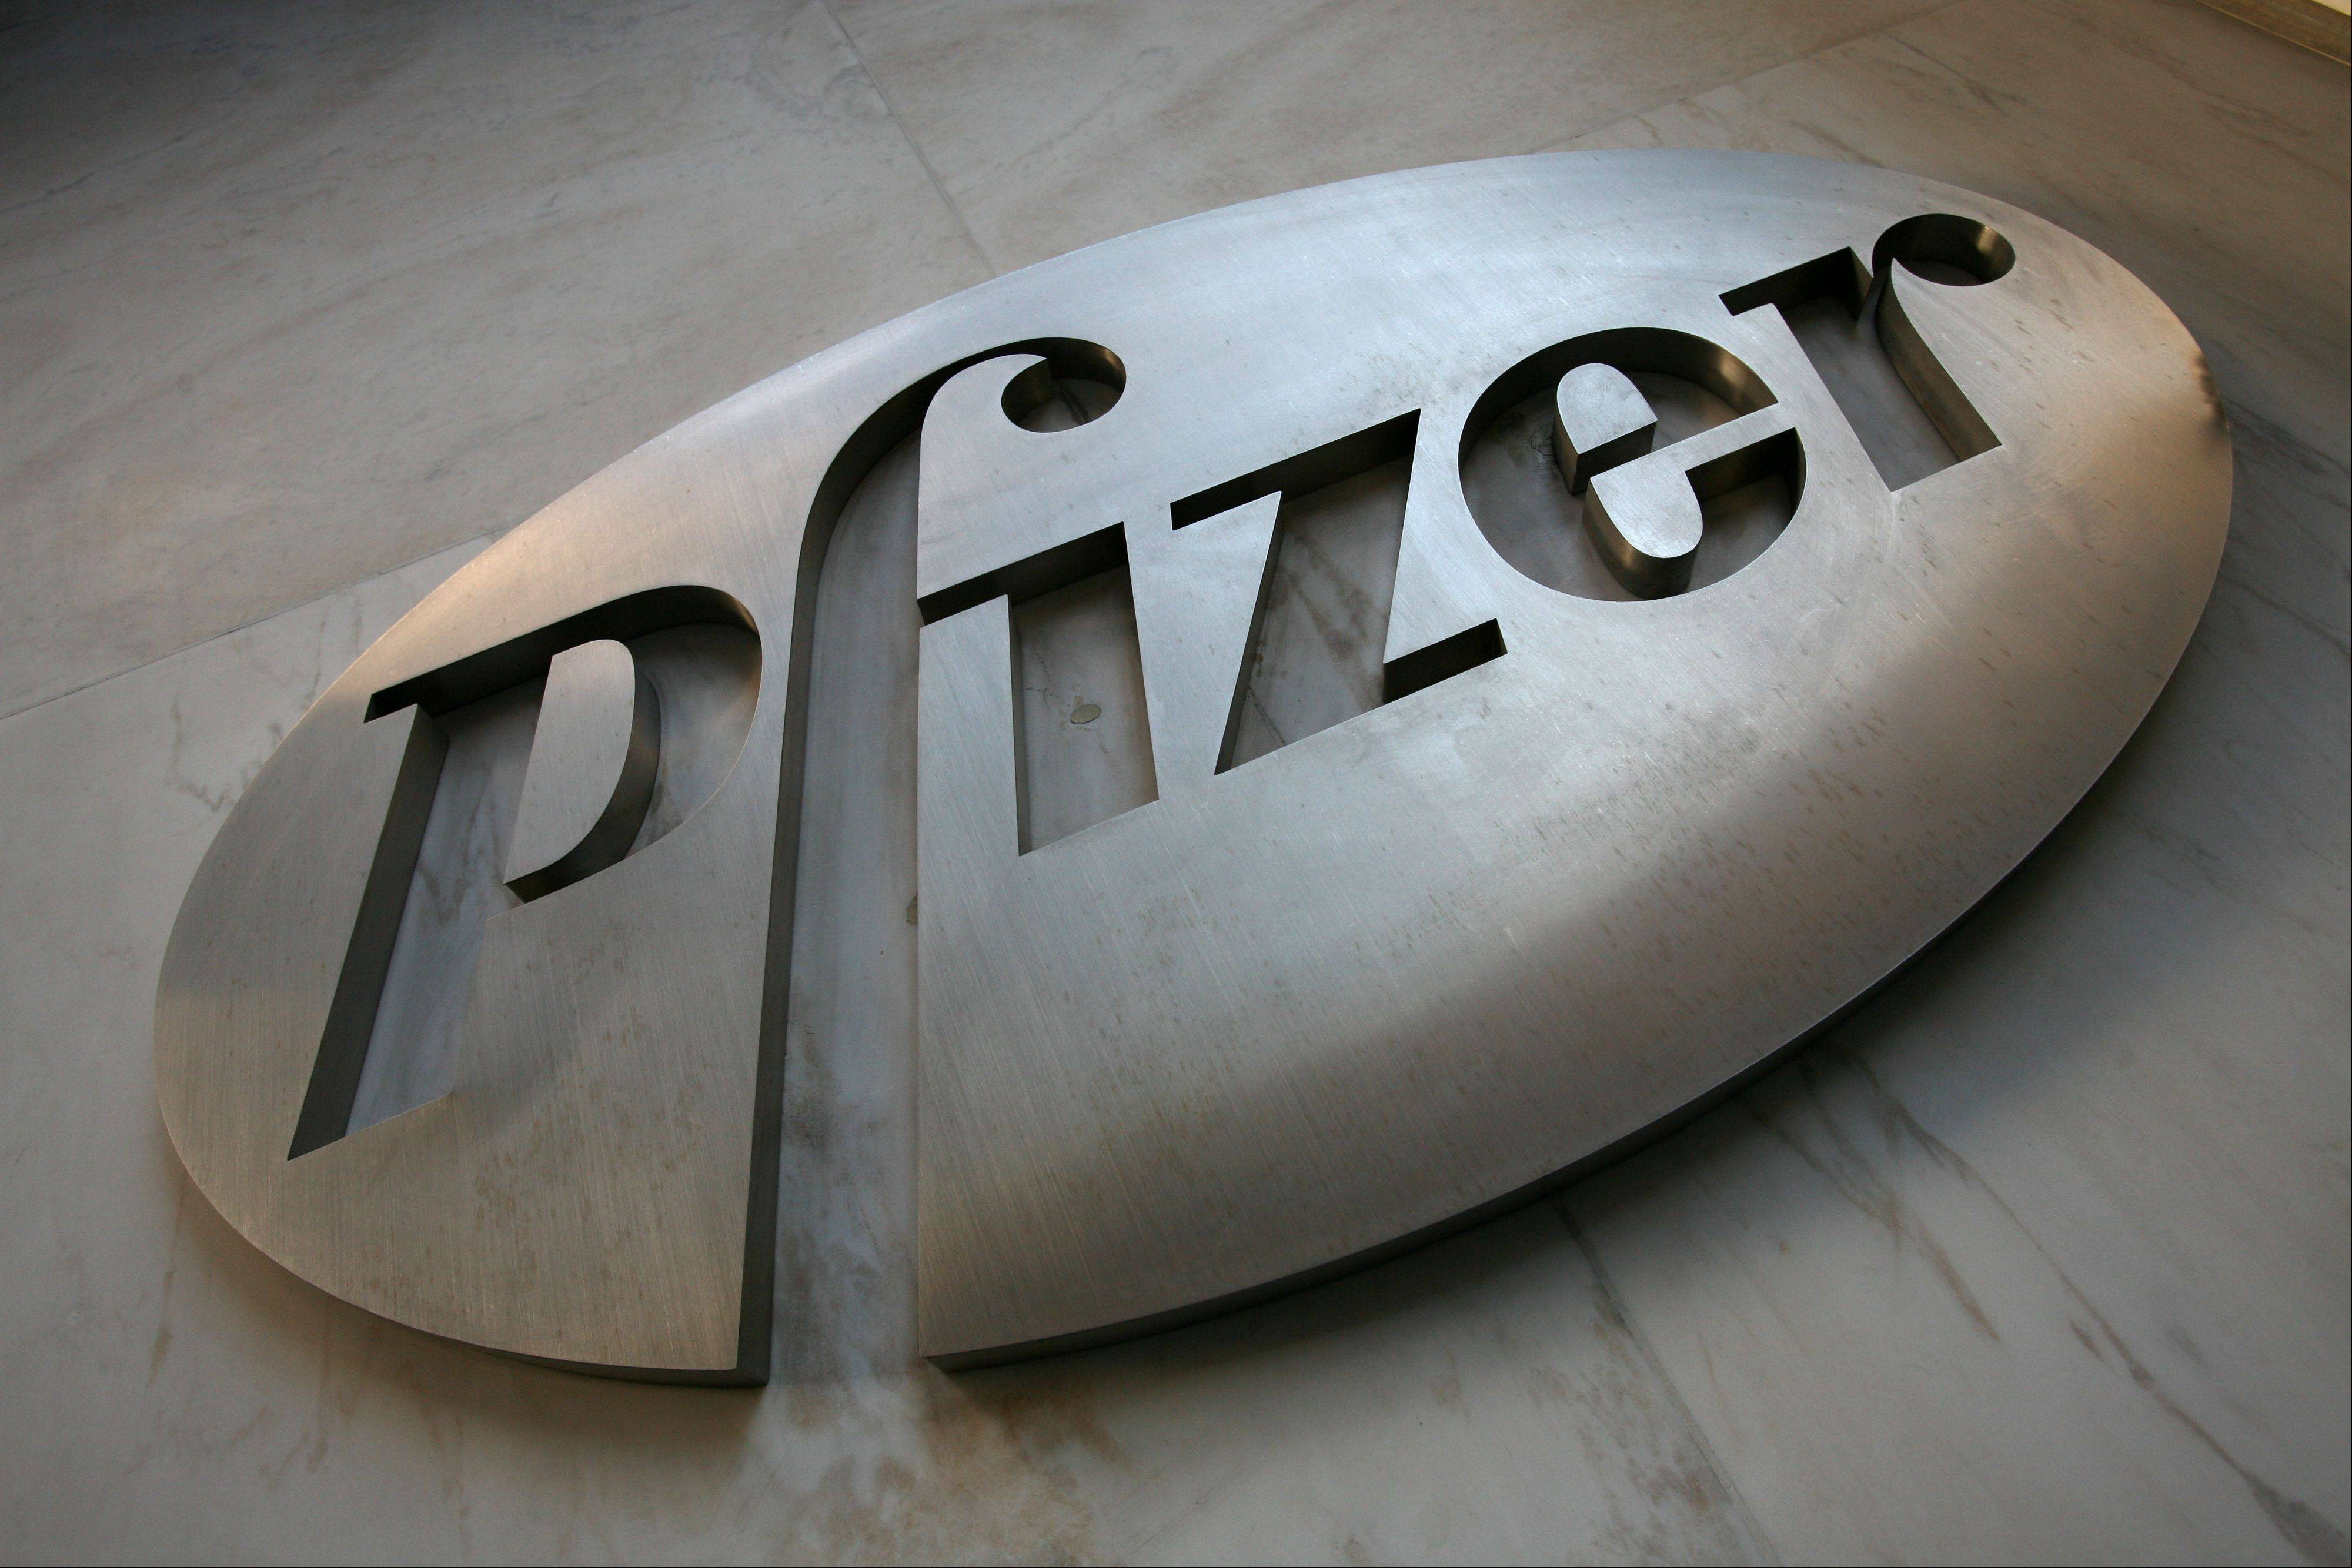 Pfizer Inc., Johnson & Johnson and Elan Corp. ended most plans to develop an Alzheimer's drug after a second trial failure, a blow to the companies' efforts to market the first product to slow progress of the disease.